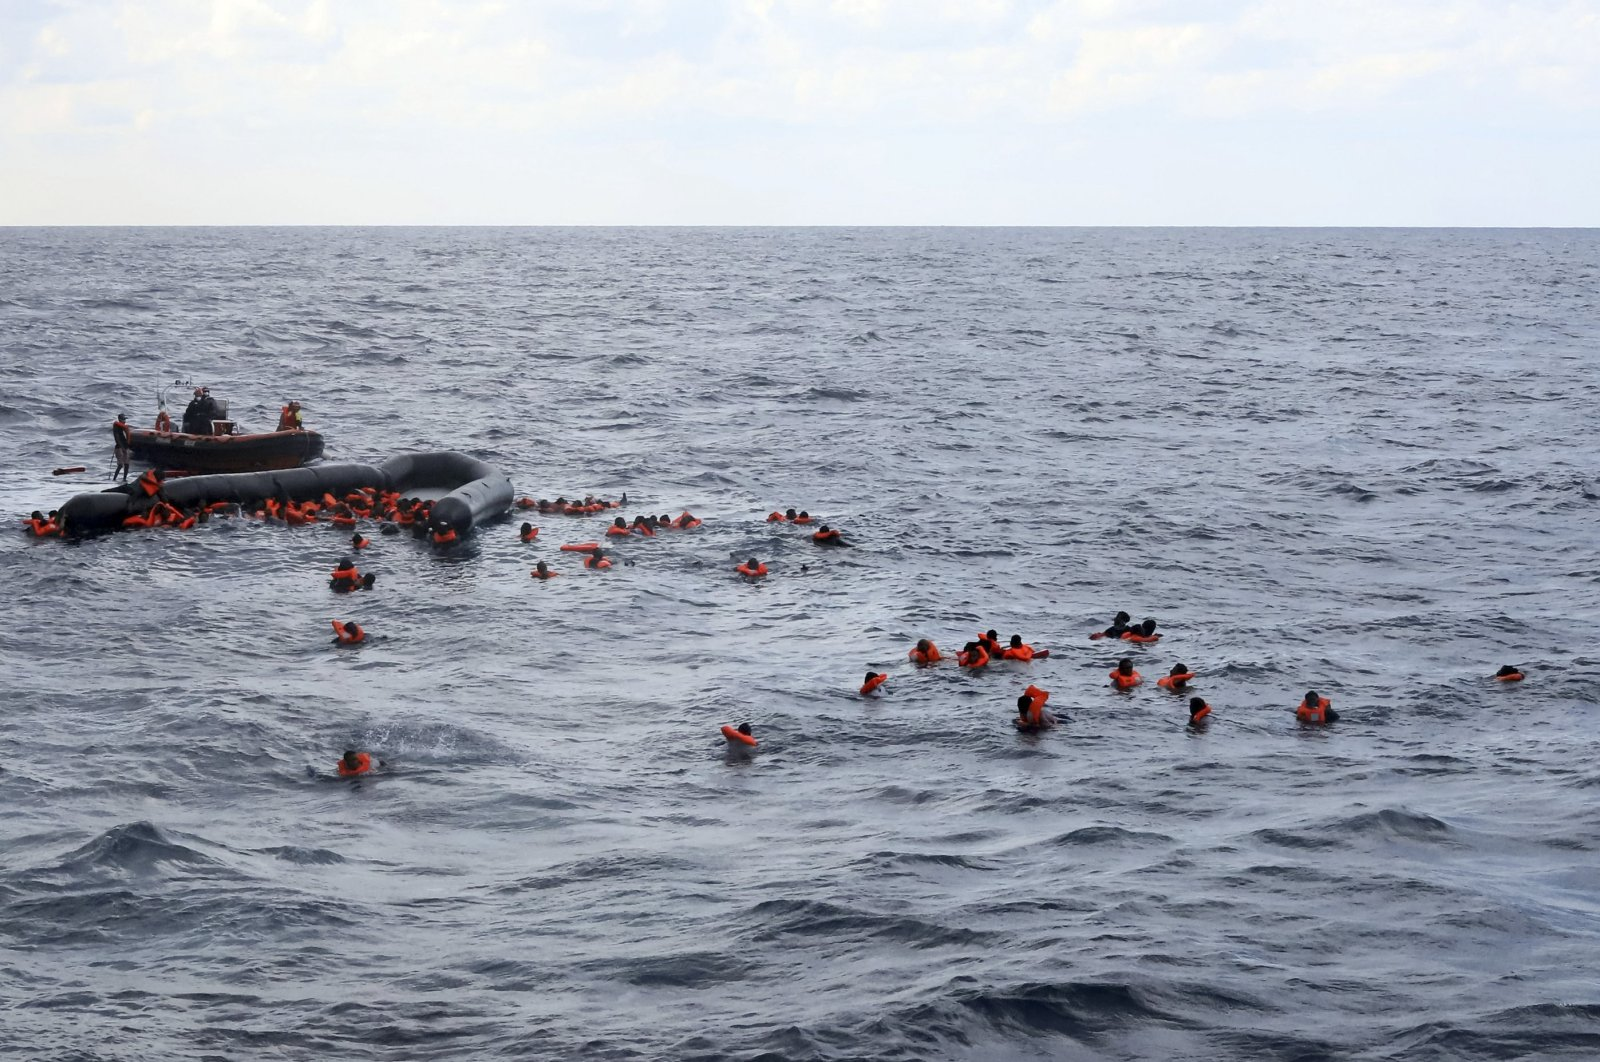 Refugees and migrants are rescued by members of the Spanish NGO Proactiva Open Arms in the Mediterranean Sea, Nov. 11, 2020. (AP Photo)